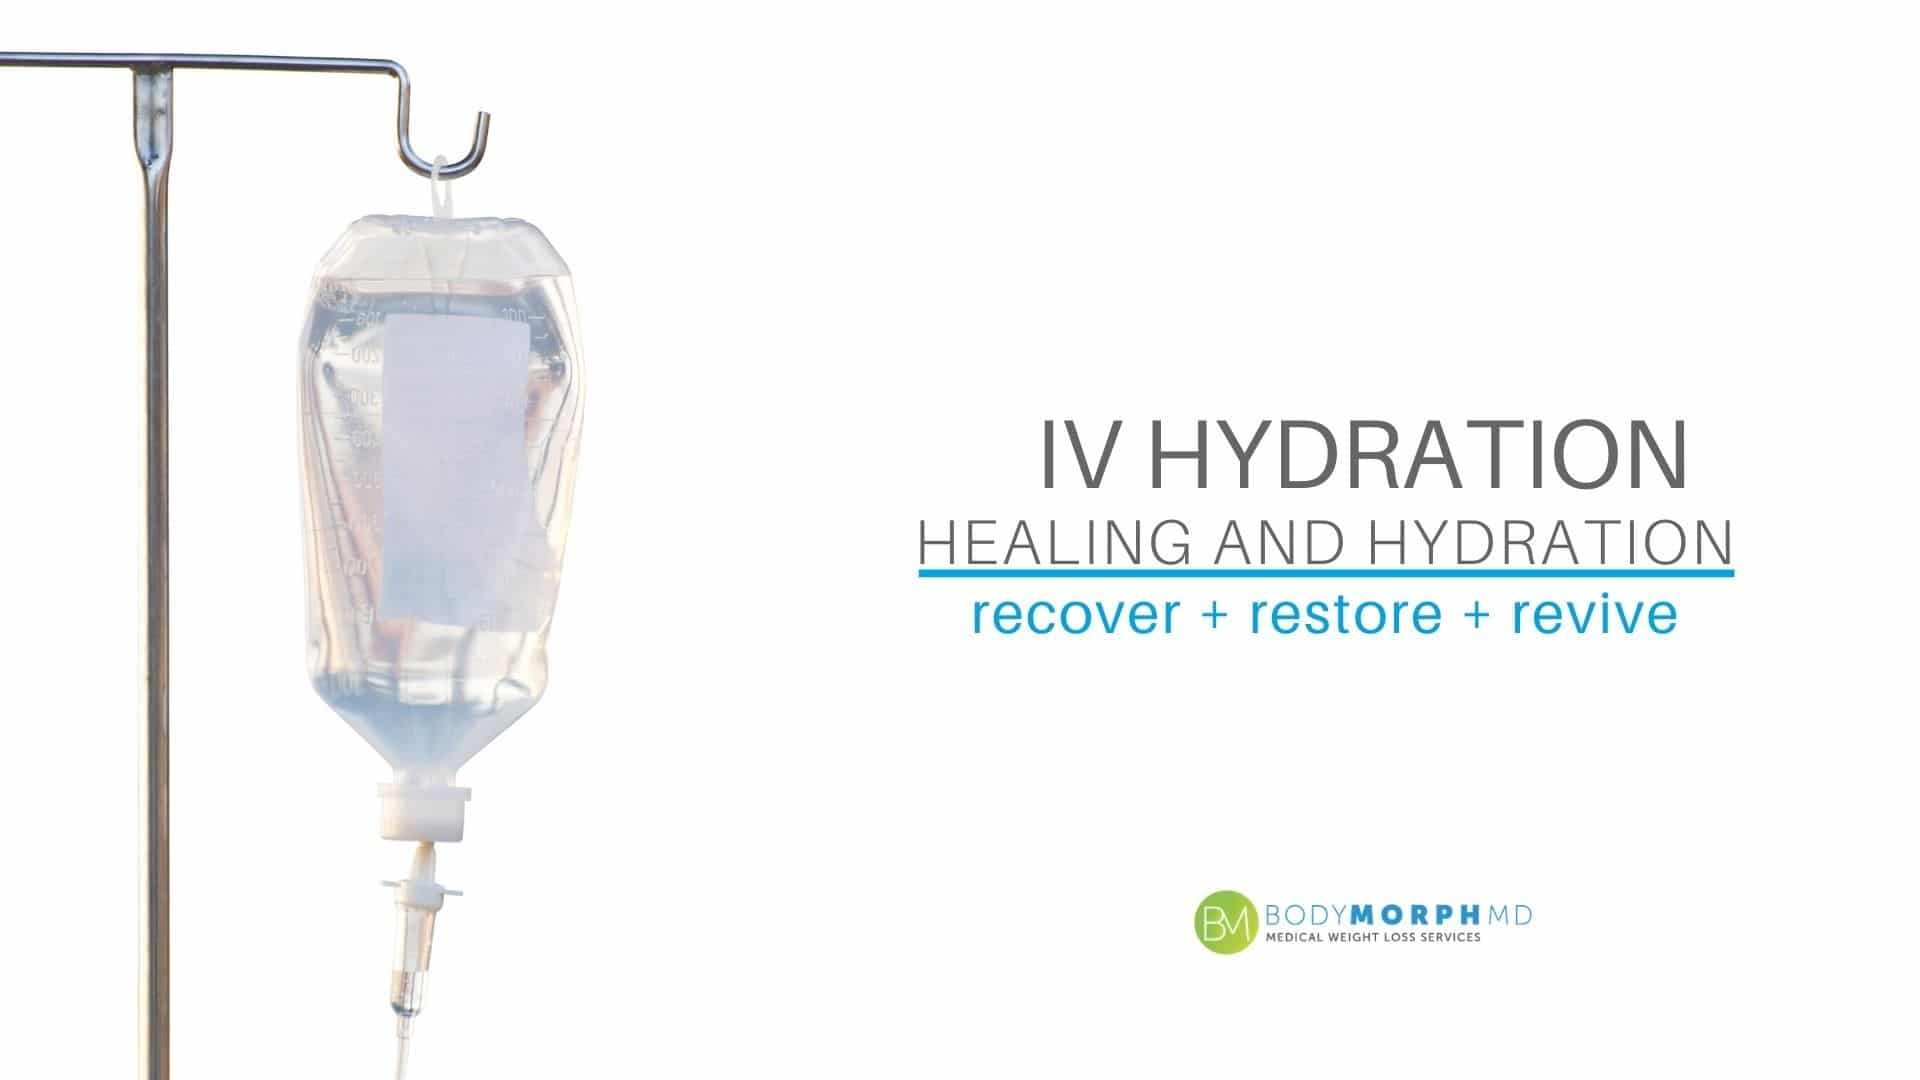 IV healing and hydrating drips available at Body Morph MD.